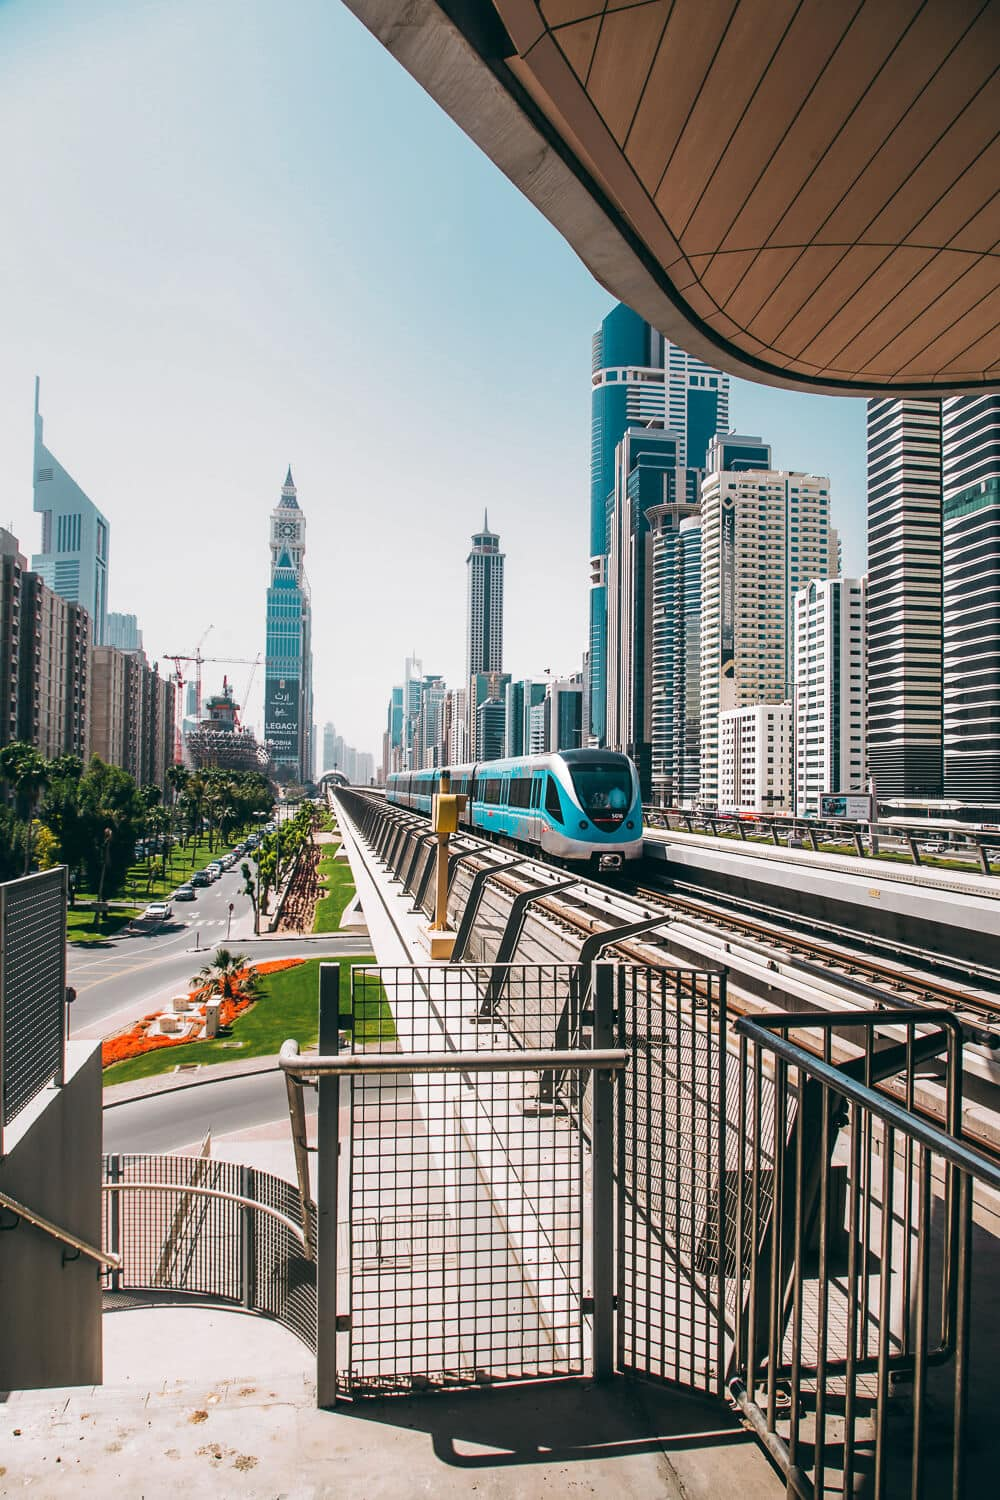 The Dubai Metro // The Ultimate Dubai Travel Guide // Everything you need to know for a visit to the United Arab Emirates including transportation tips, things to do, what to wear, photography and more!